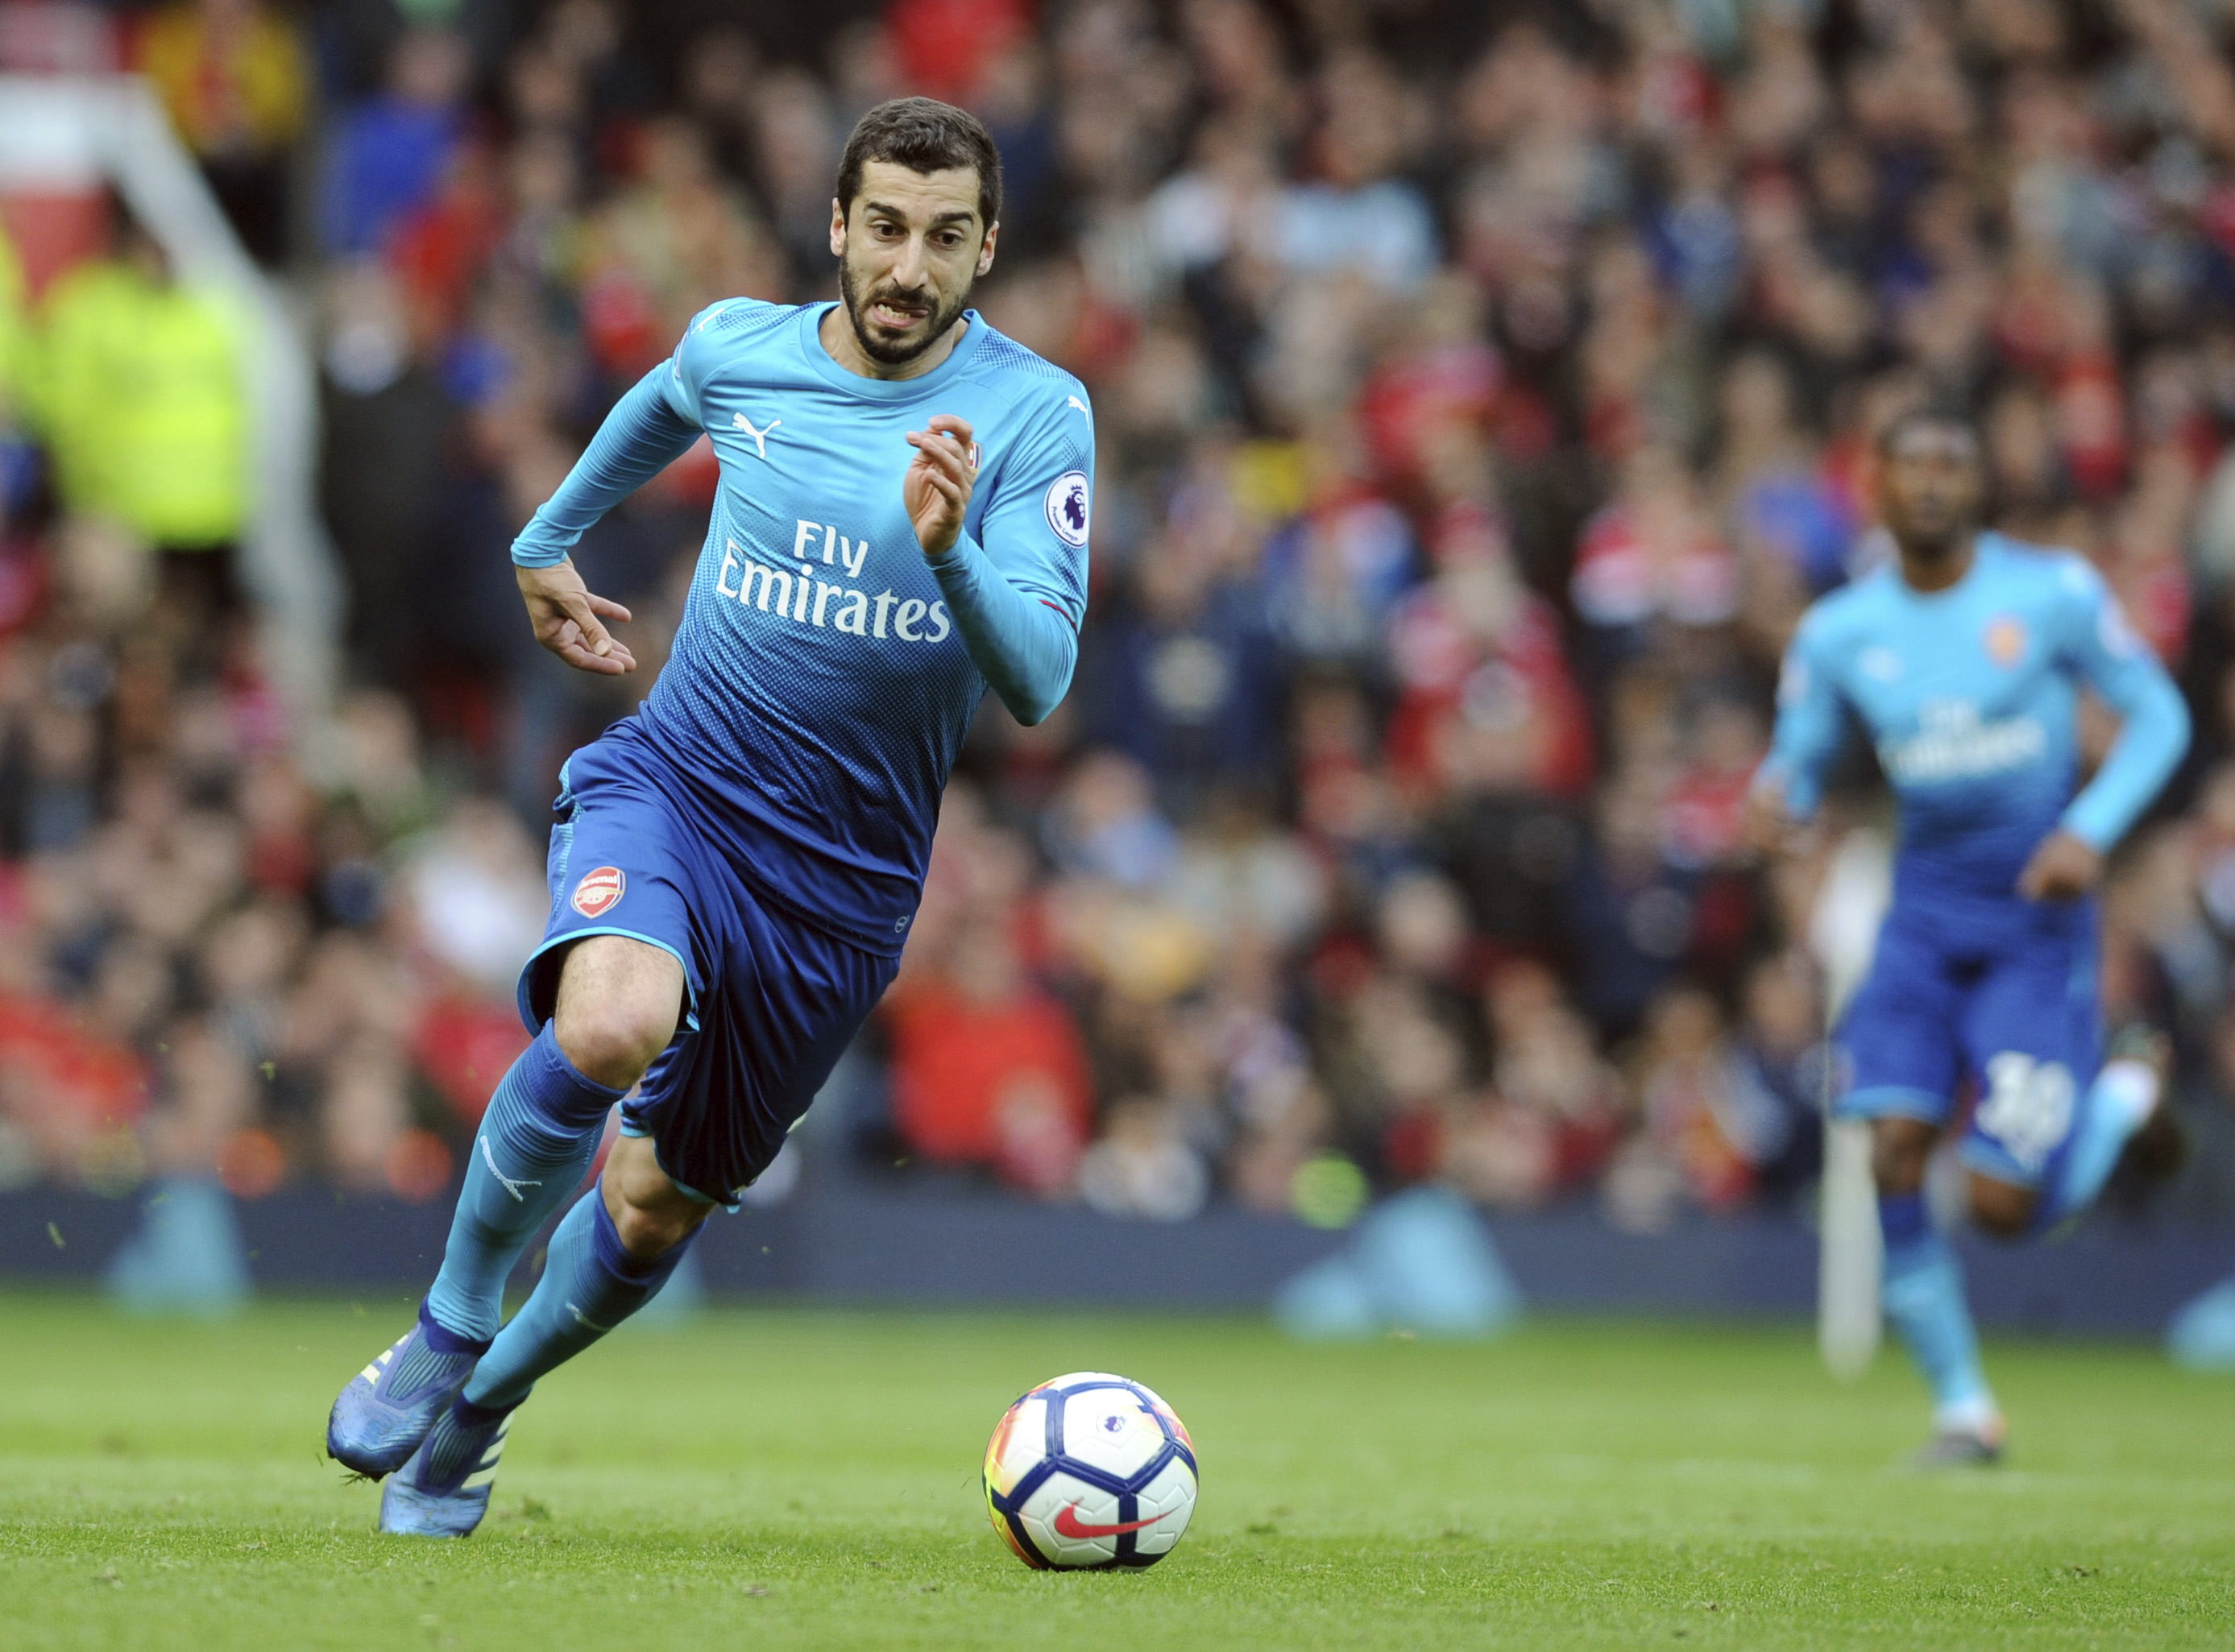 Arsenal hopes to win Europa League for missing Mkhitaryan